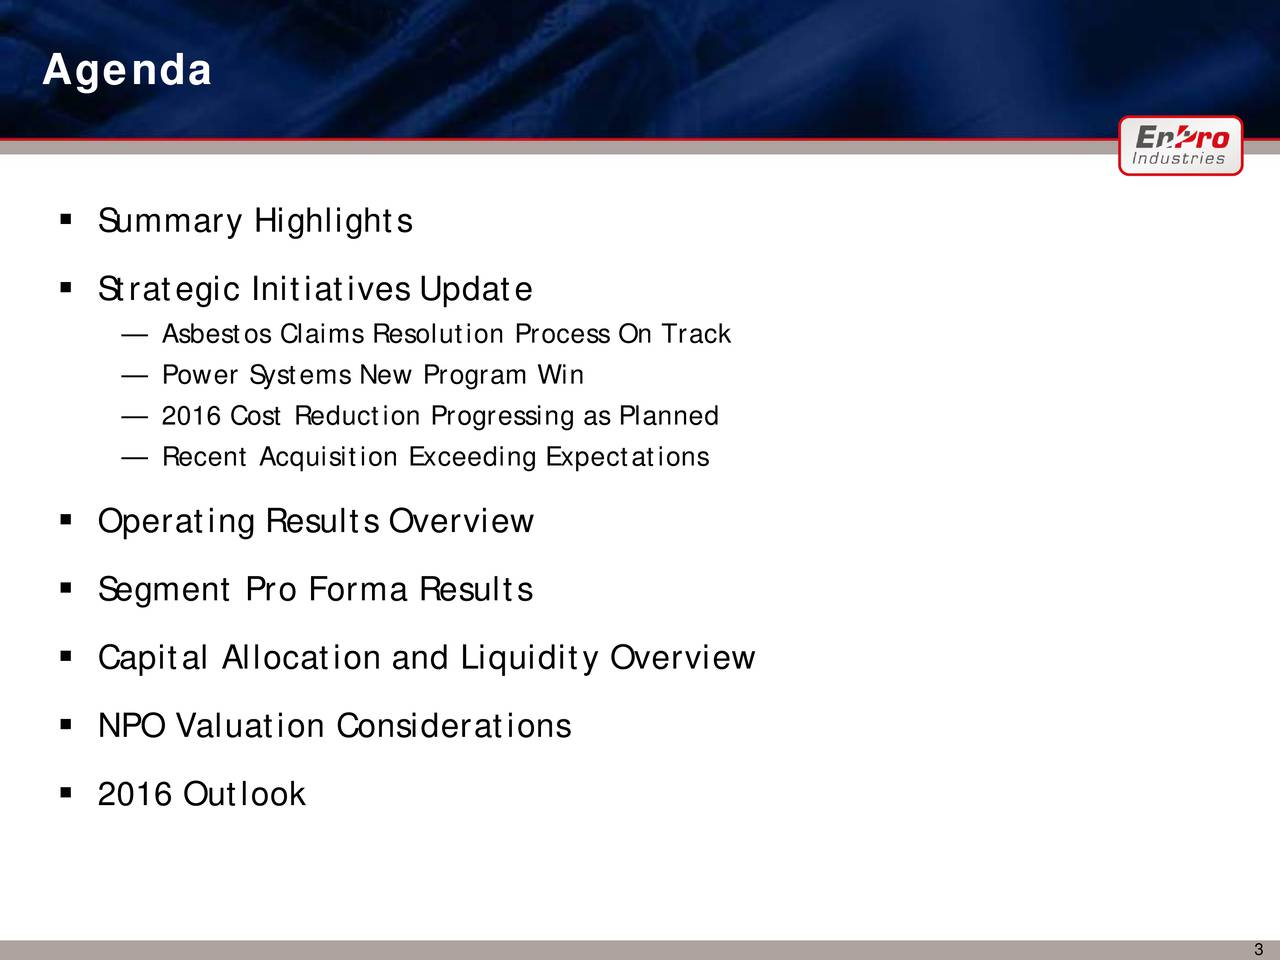 Summary Highlights Strategic Initiatives Update Asbestos Claims Resolution Process On Track Power Systems New Program Win 2016 Cost Reduction Progressing as Planned Recent Acquisition Exceeding Expectations Operating Results Overview Segment Pro Forma Results Capital Allocation and Liquidity Overview NPO Valuation Considerations 2016 Outlook